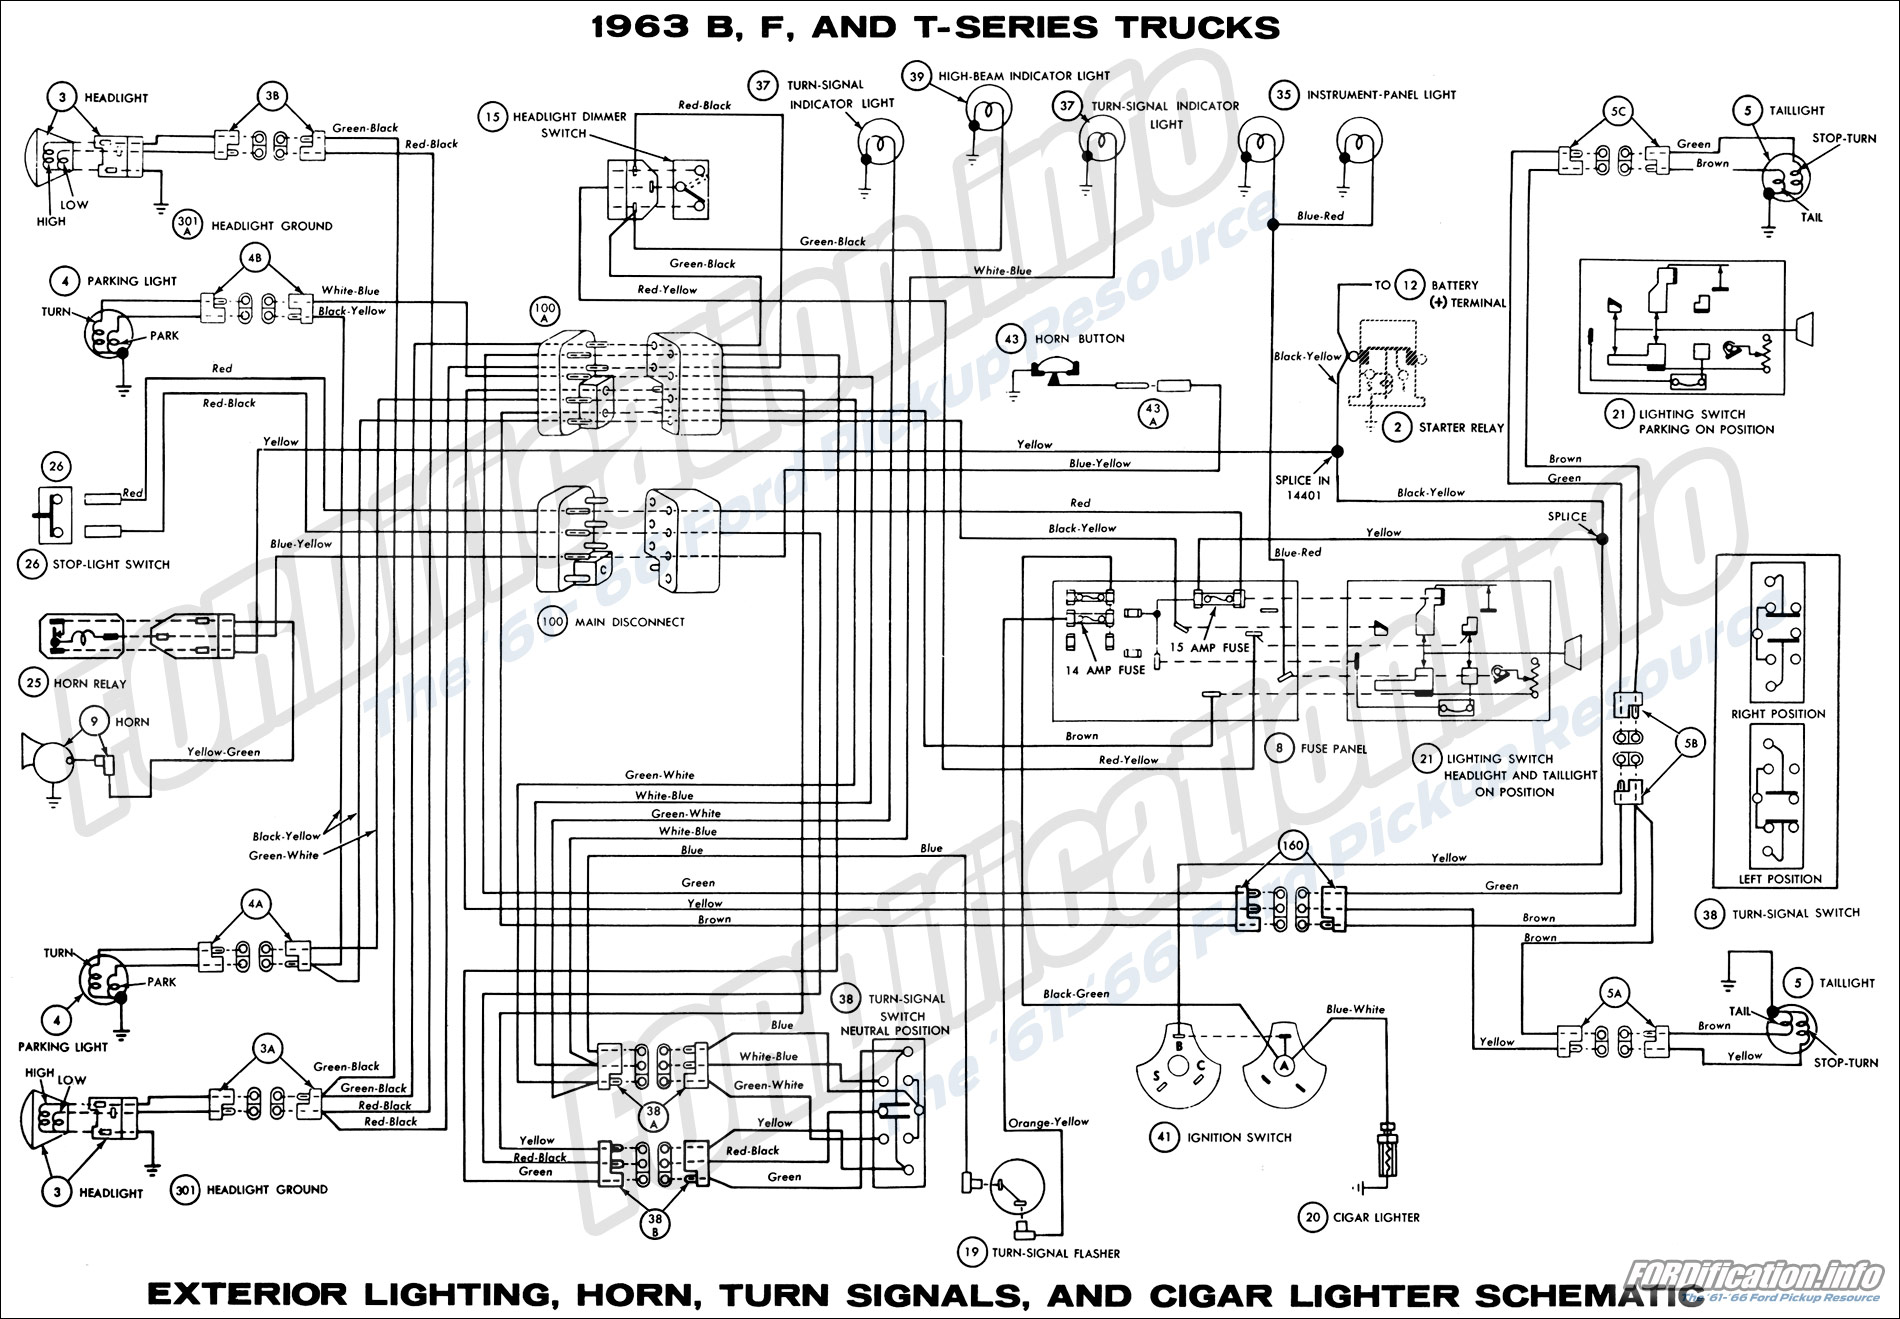 1963 Ford F100 Wiring Diagram | rent-master wiring diagram export |  rent-master.zerinolgola.it | Wiring Schematic For 1963 Ford F100 |  | zerinolgola.it